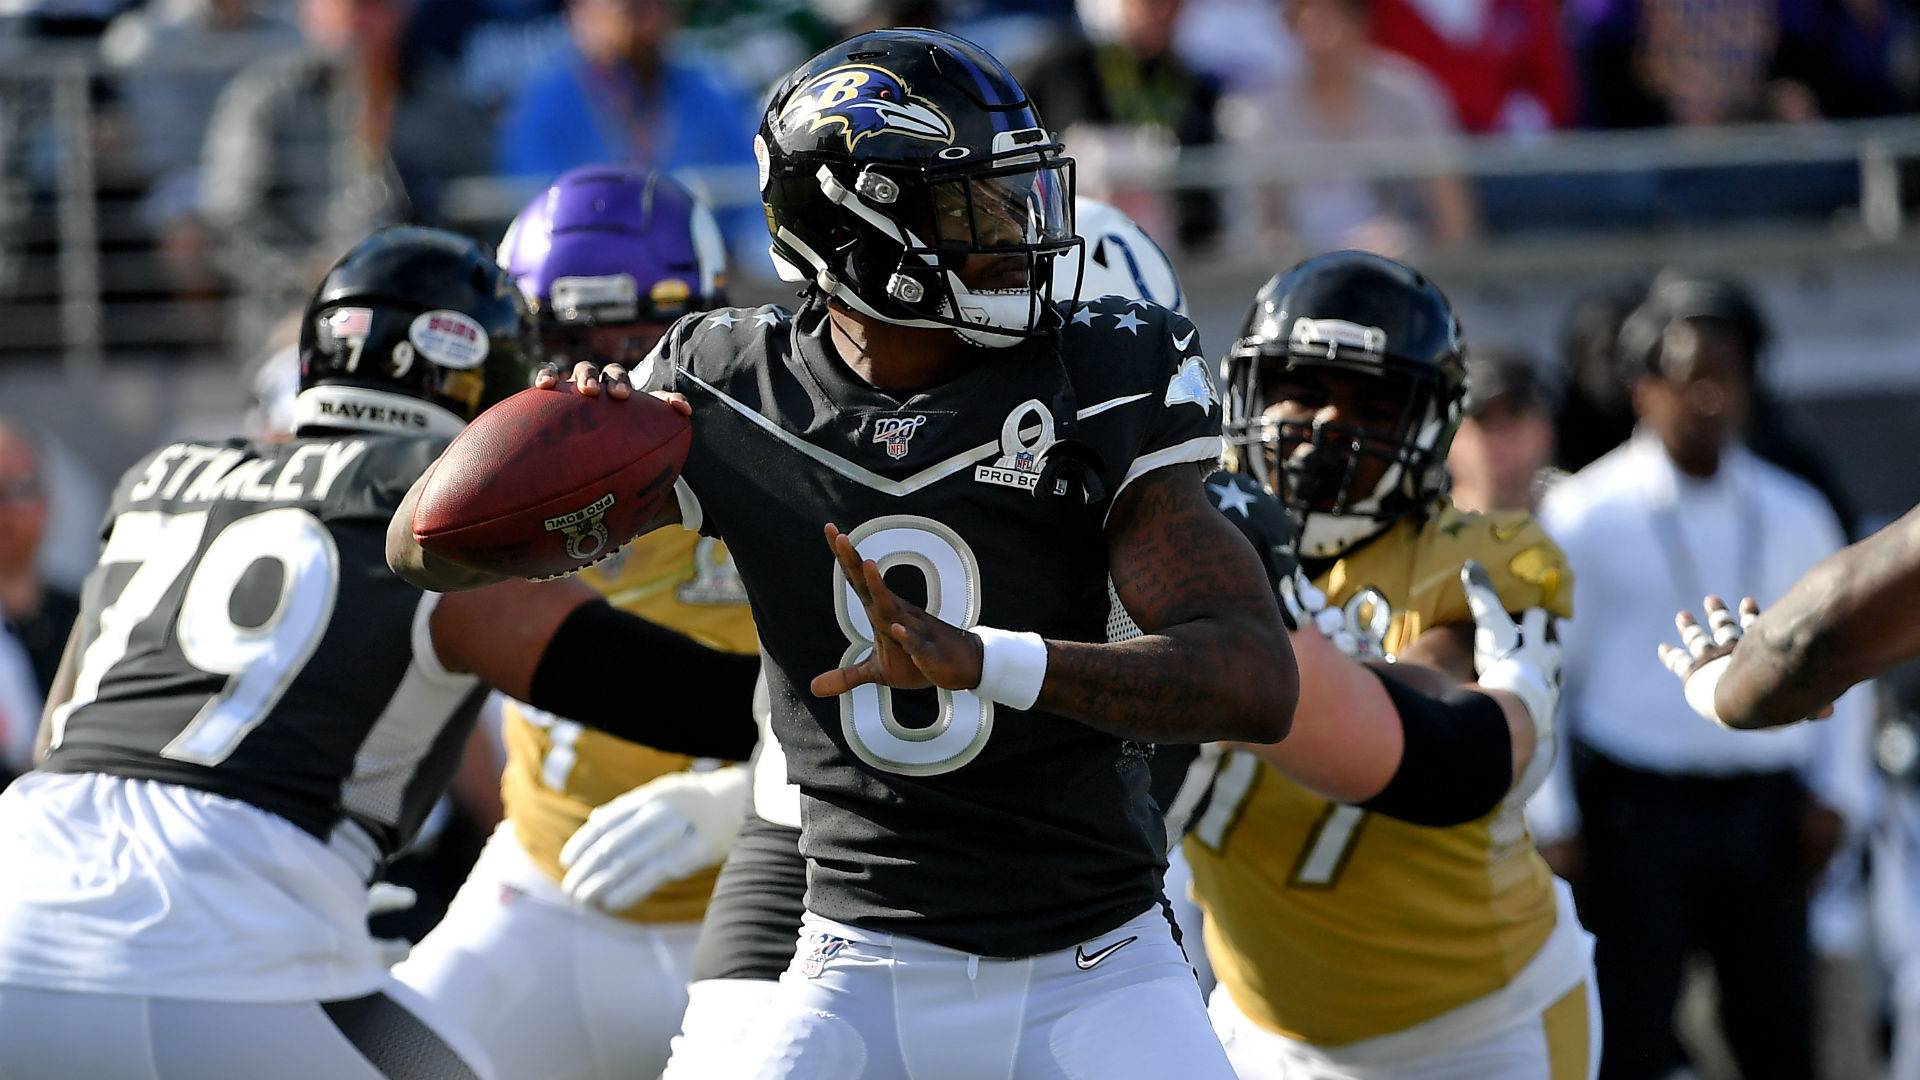 Lamar Jackson finds Mark Andrews for touchdown in Pro Bowl NBC 1920x1080